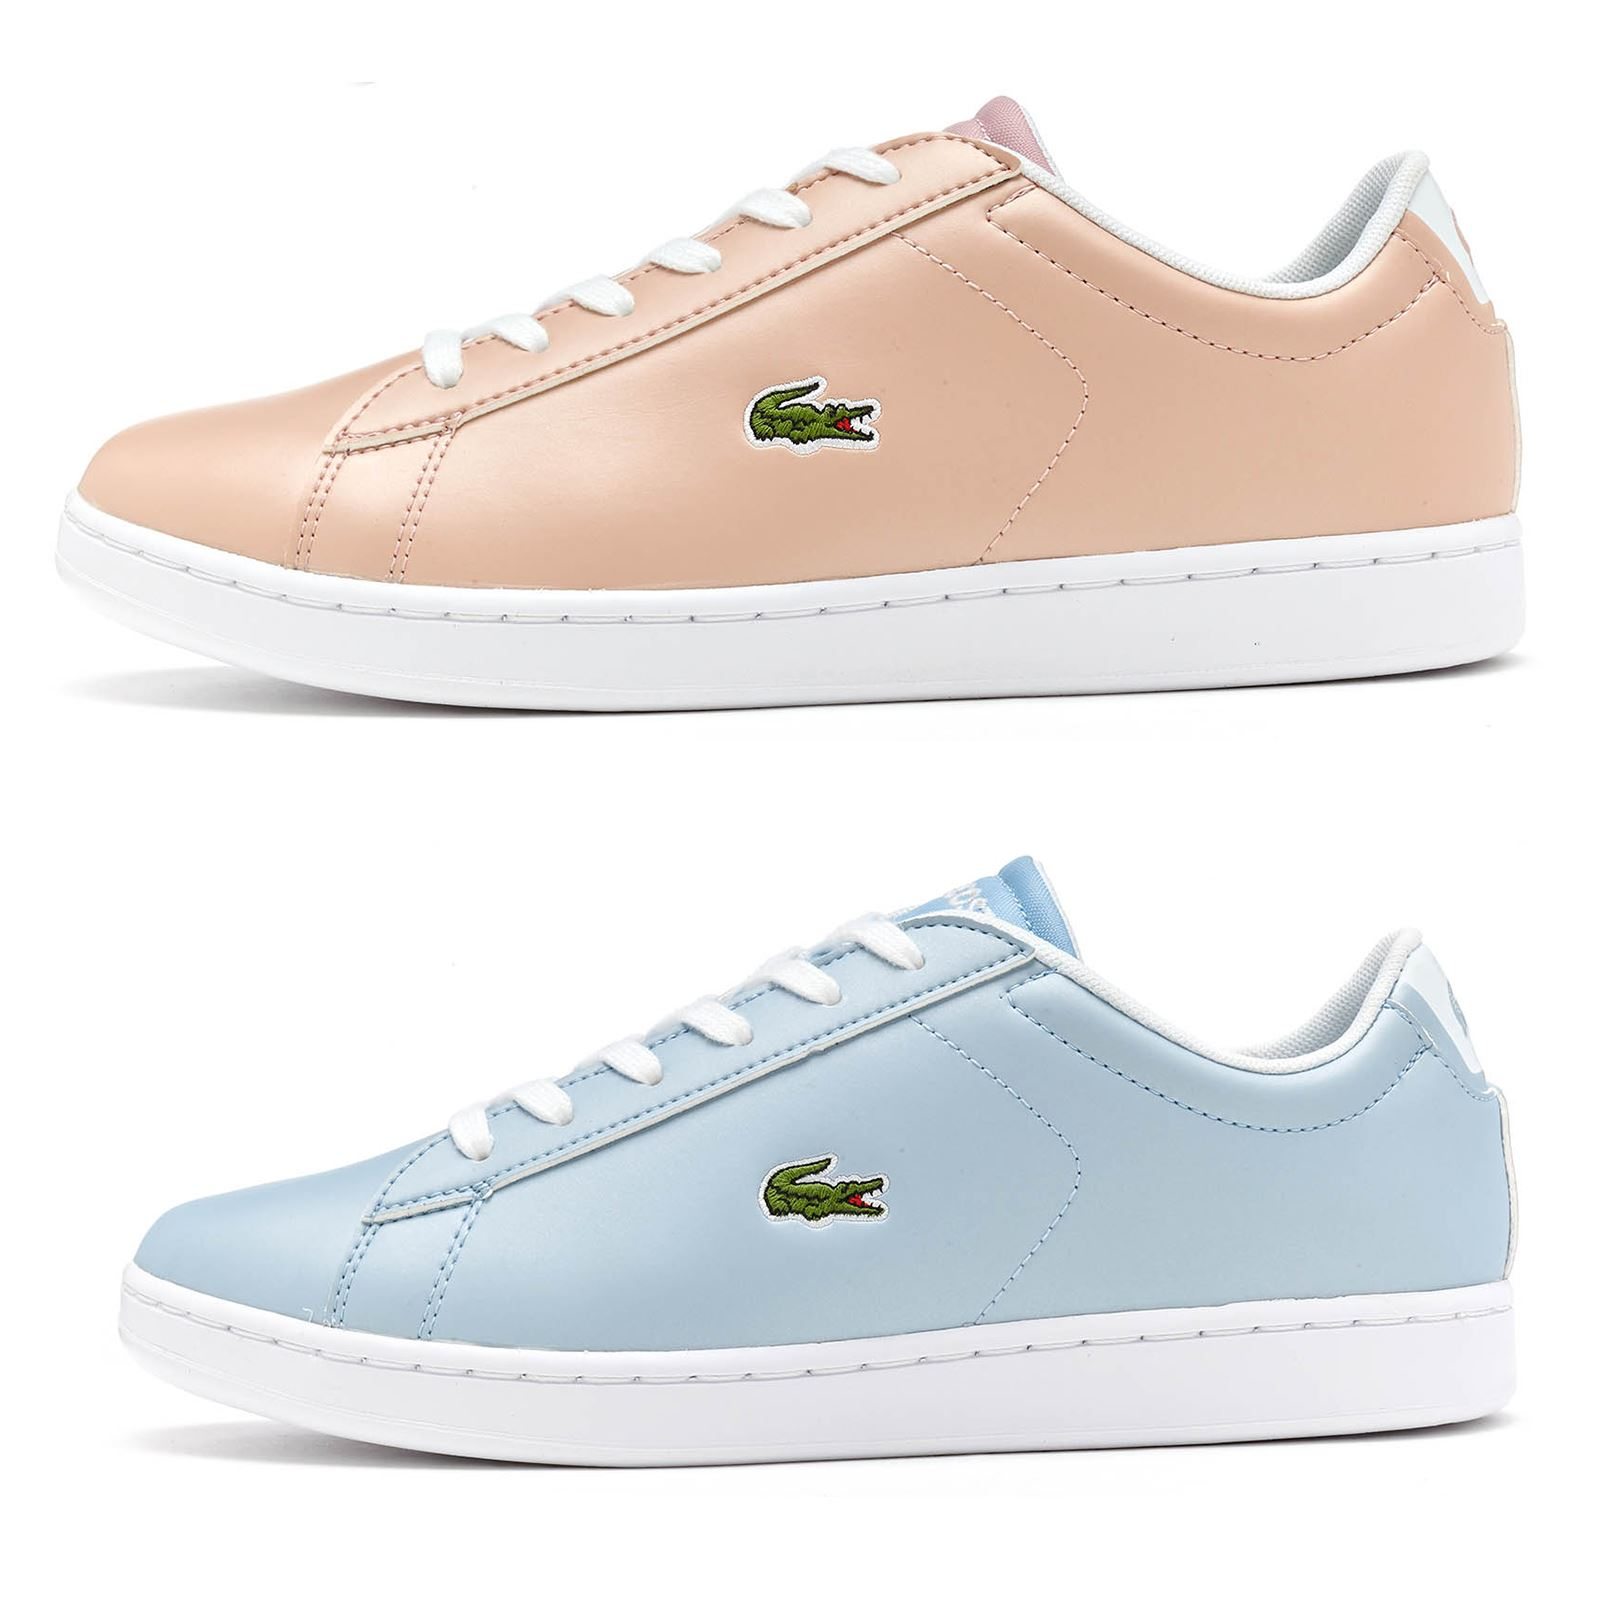 d2bbcf6d2 Lacoste Carnaby Evo 317 6 SPJ GS Trainers in Pink   Blue 734SPJ0006 ...